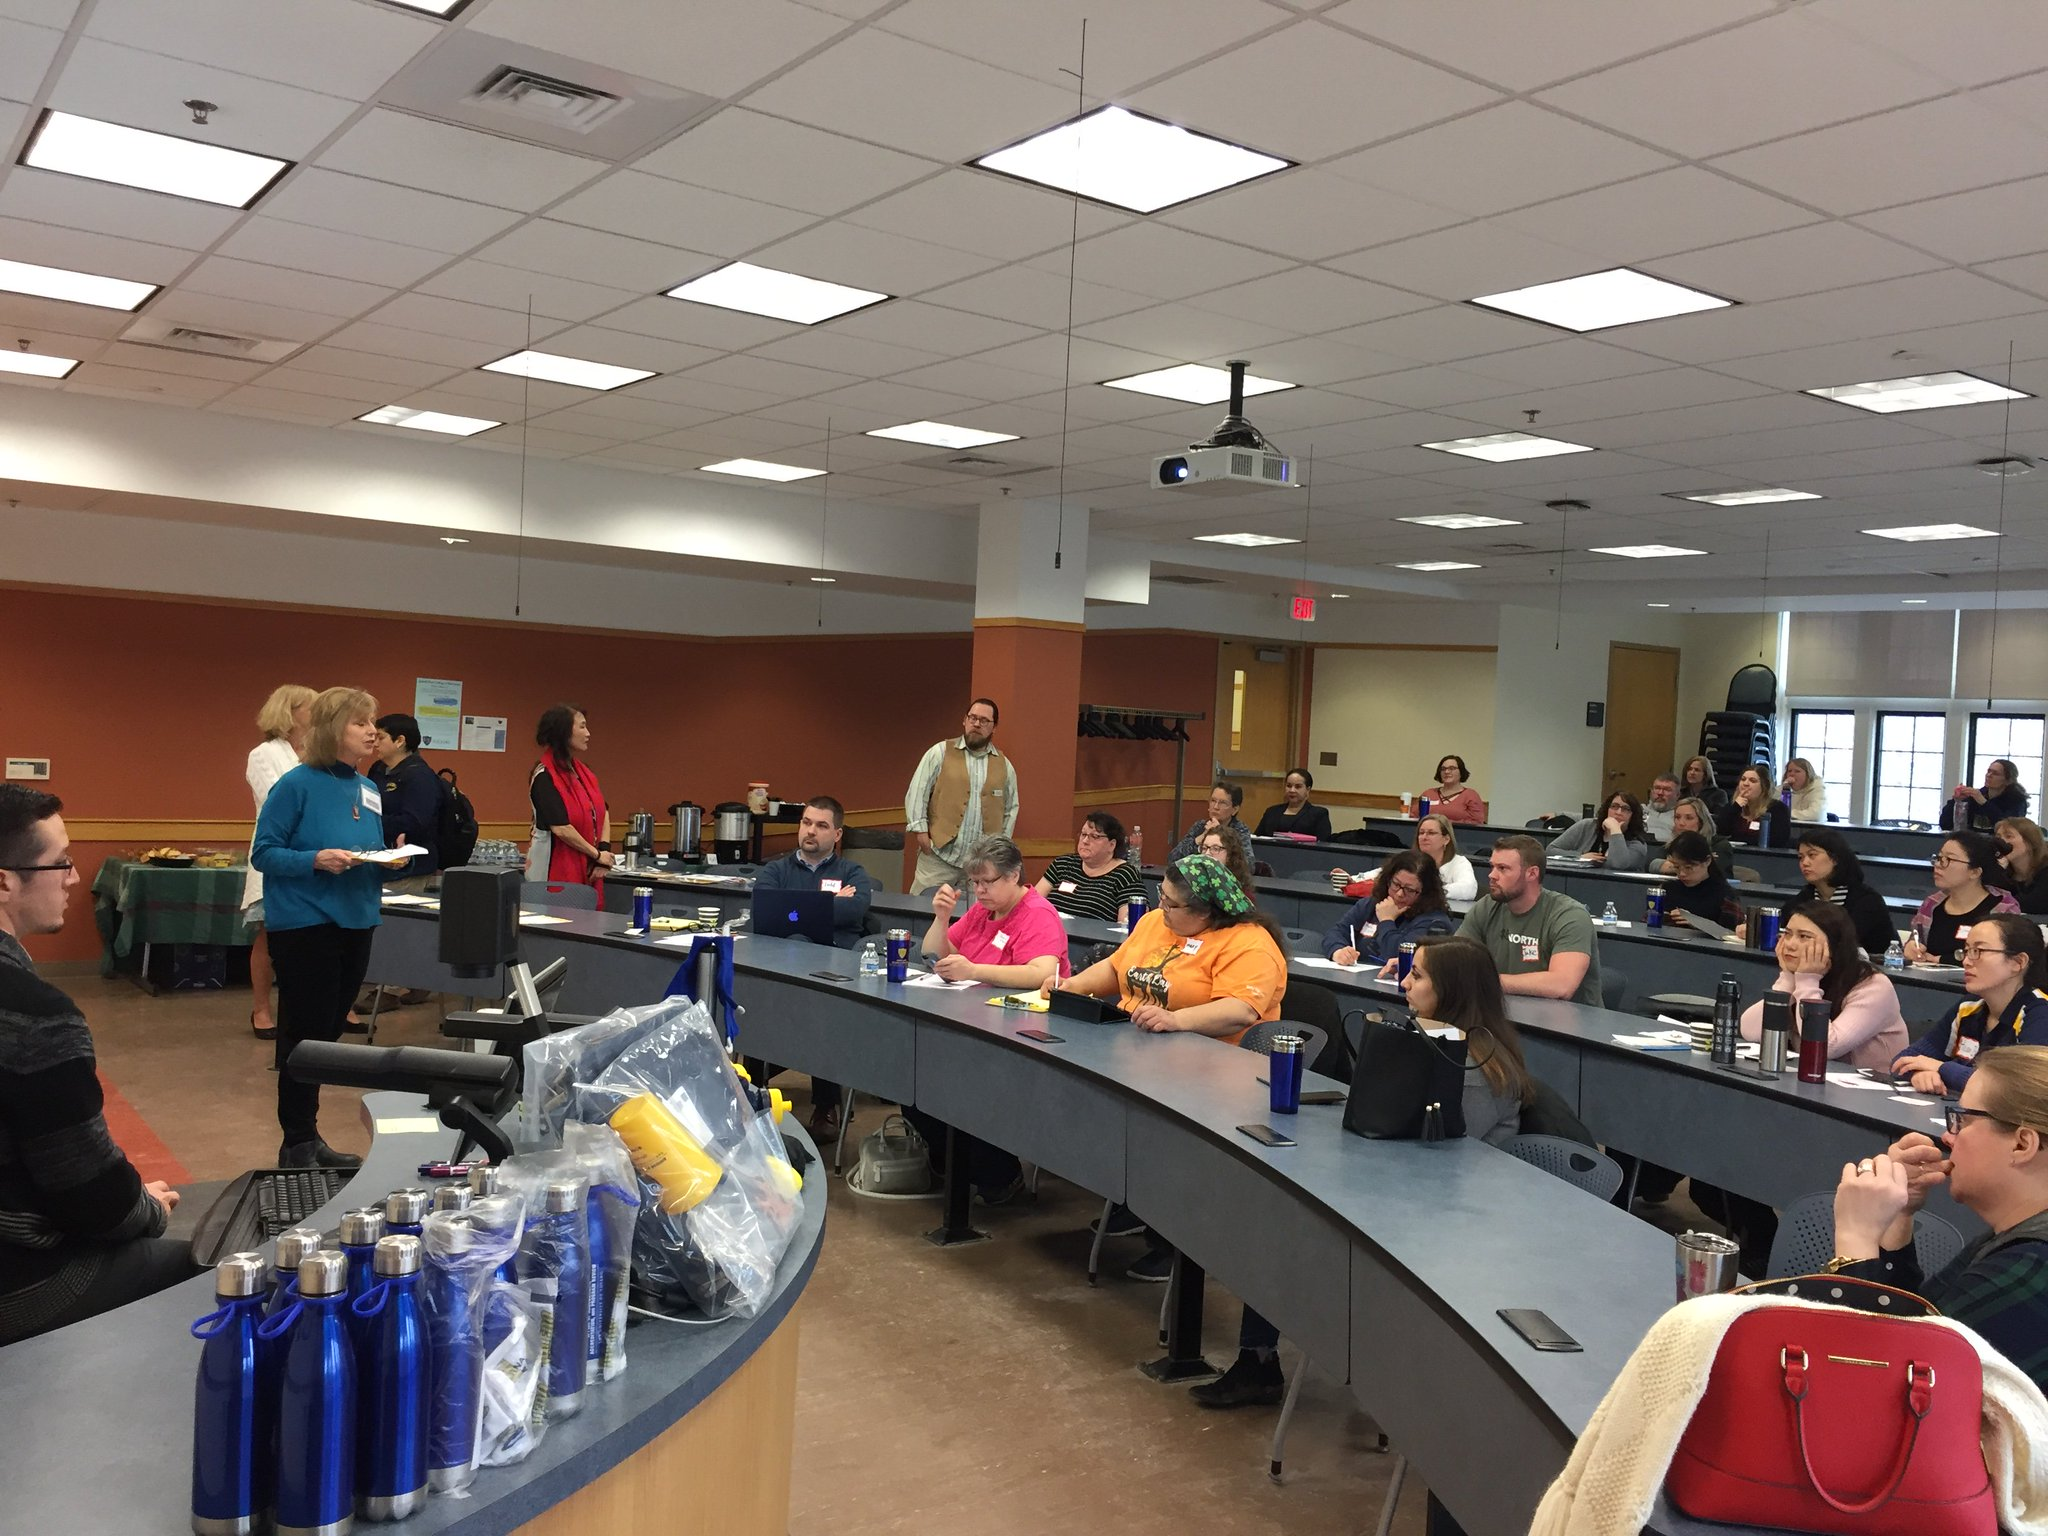 We at #Edcamp #UToledo made sure no one went home without some #swag! Dozens of giveaway prizes were made possible by the generosity of various departments at @UToledo! Thank you to the University of Toledo for such a wonderful venue within which to host our @edcamp! https://t.co/S8rhbcfUyX